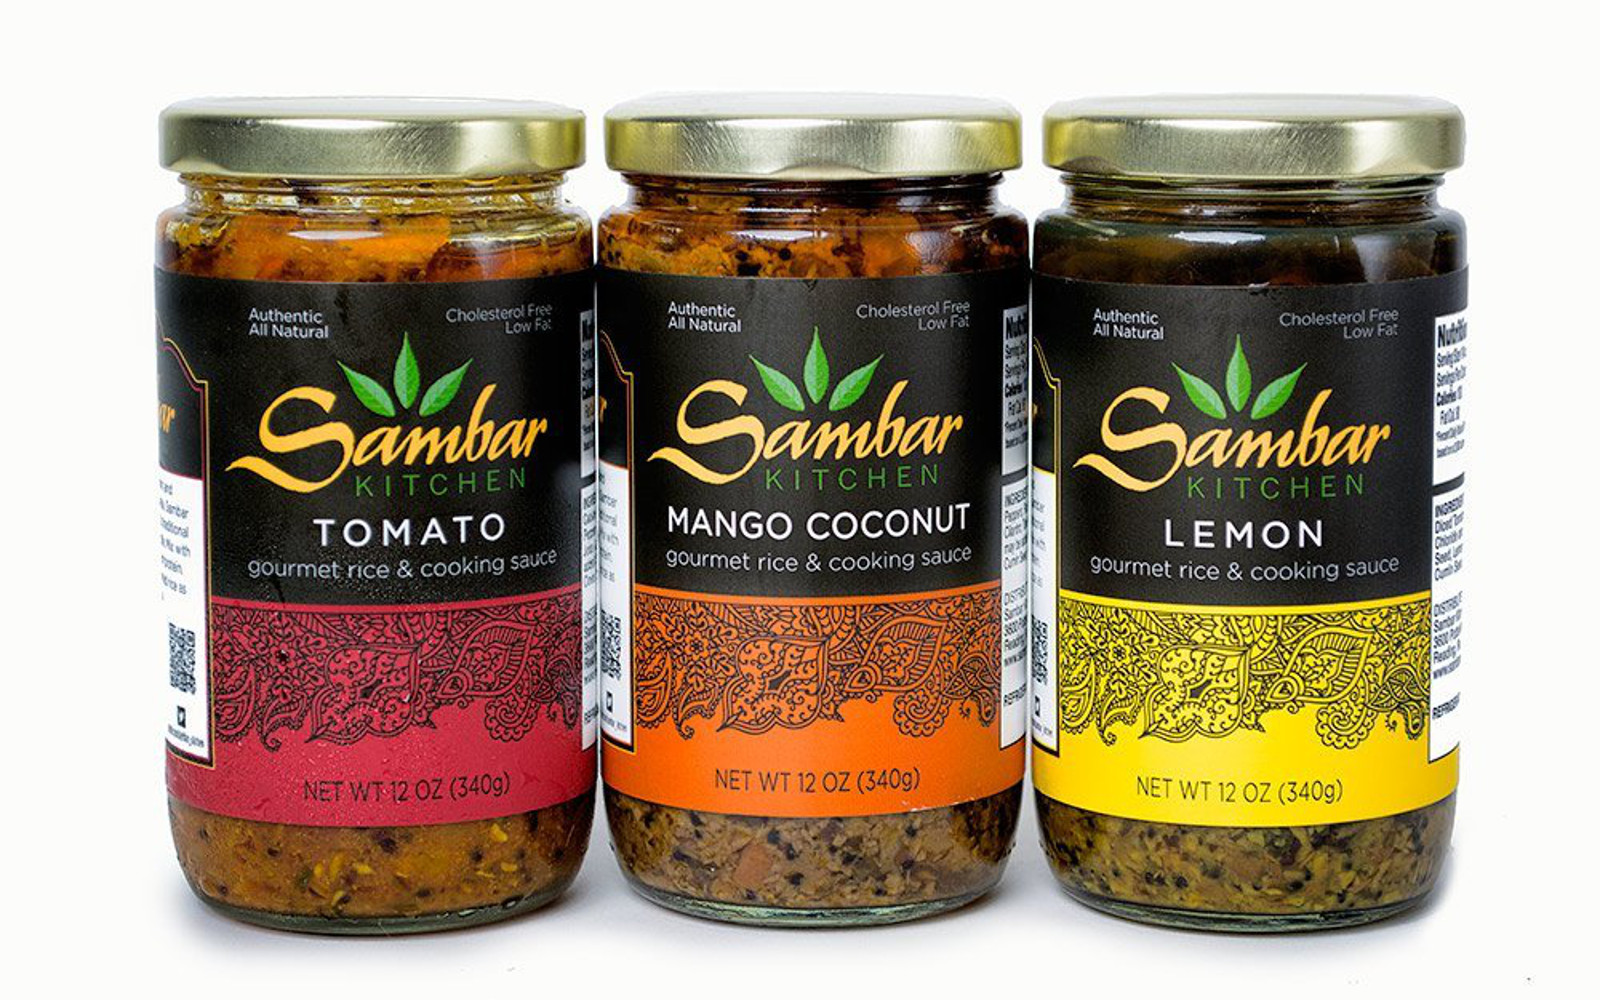 Sambar Kitchen Gourmet Rice and Cooking Sauce.jpg